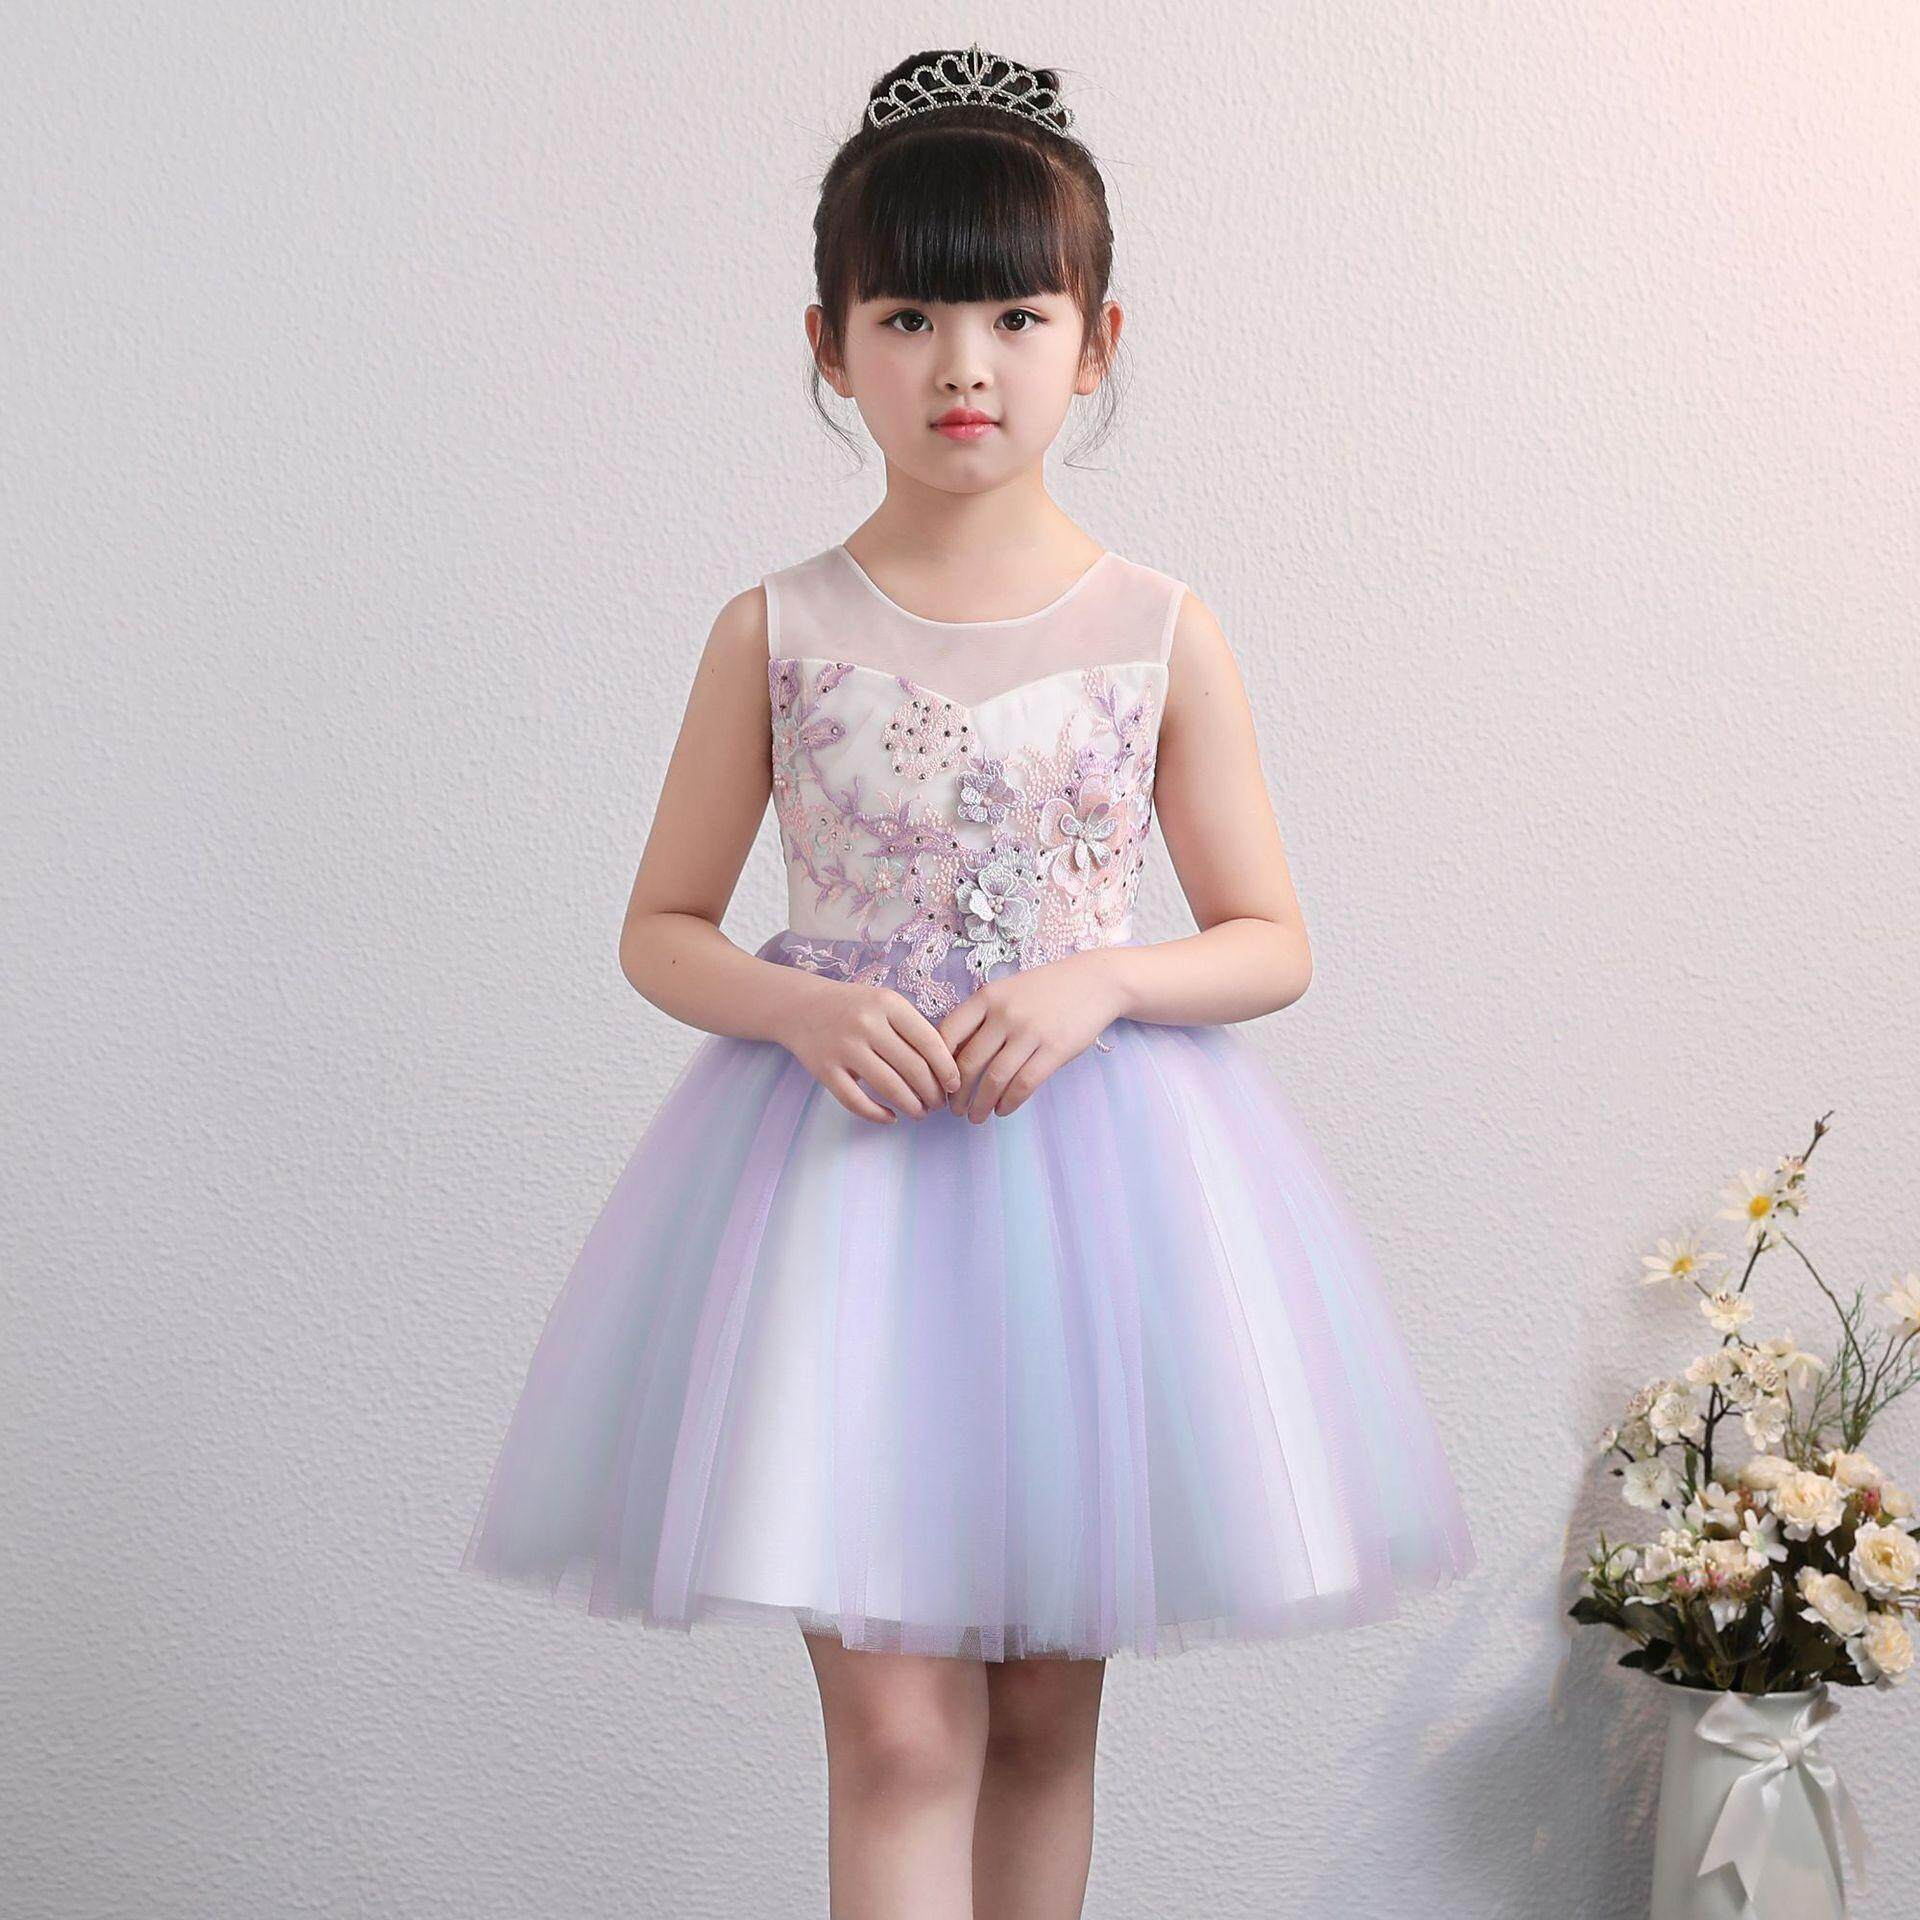 Aster Kids Girl Dress Princess Dress Party Dress Wedding Dress Birthday Dress